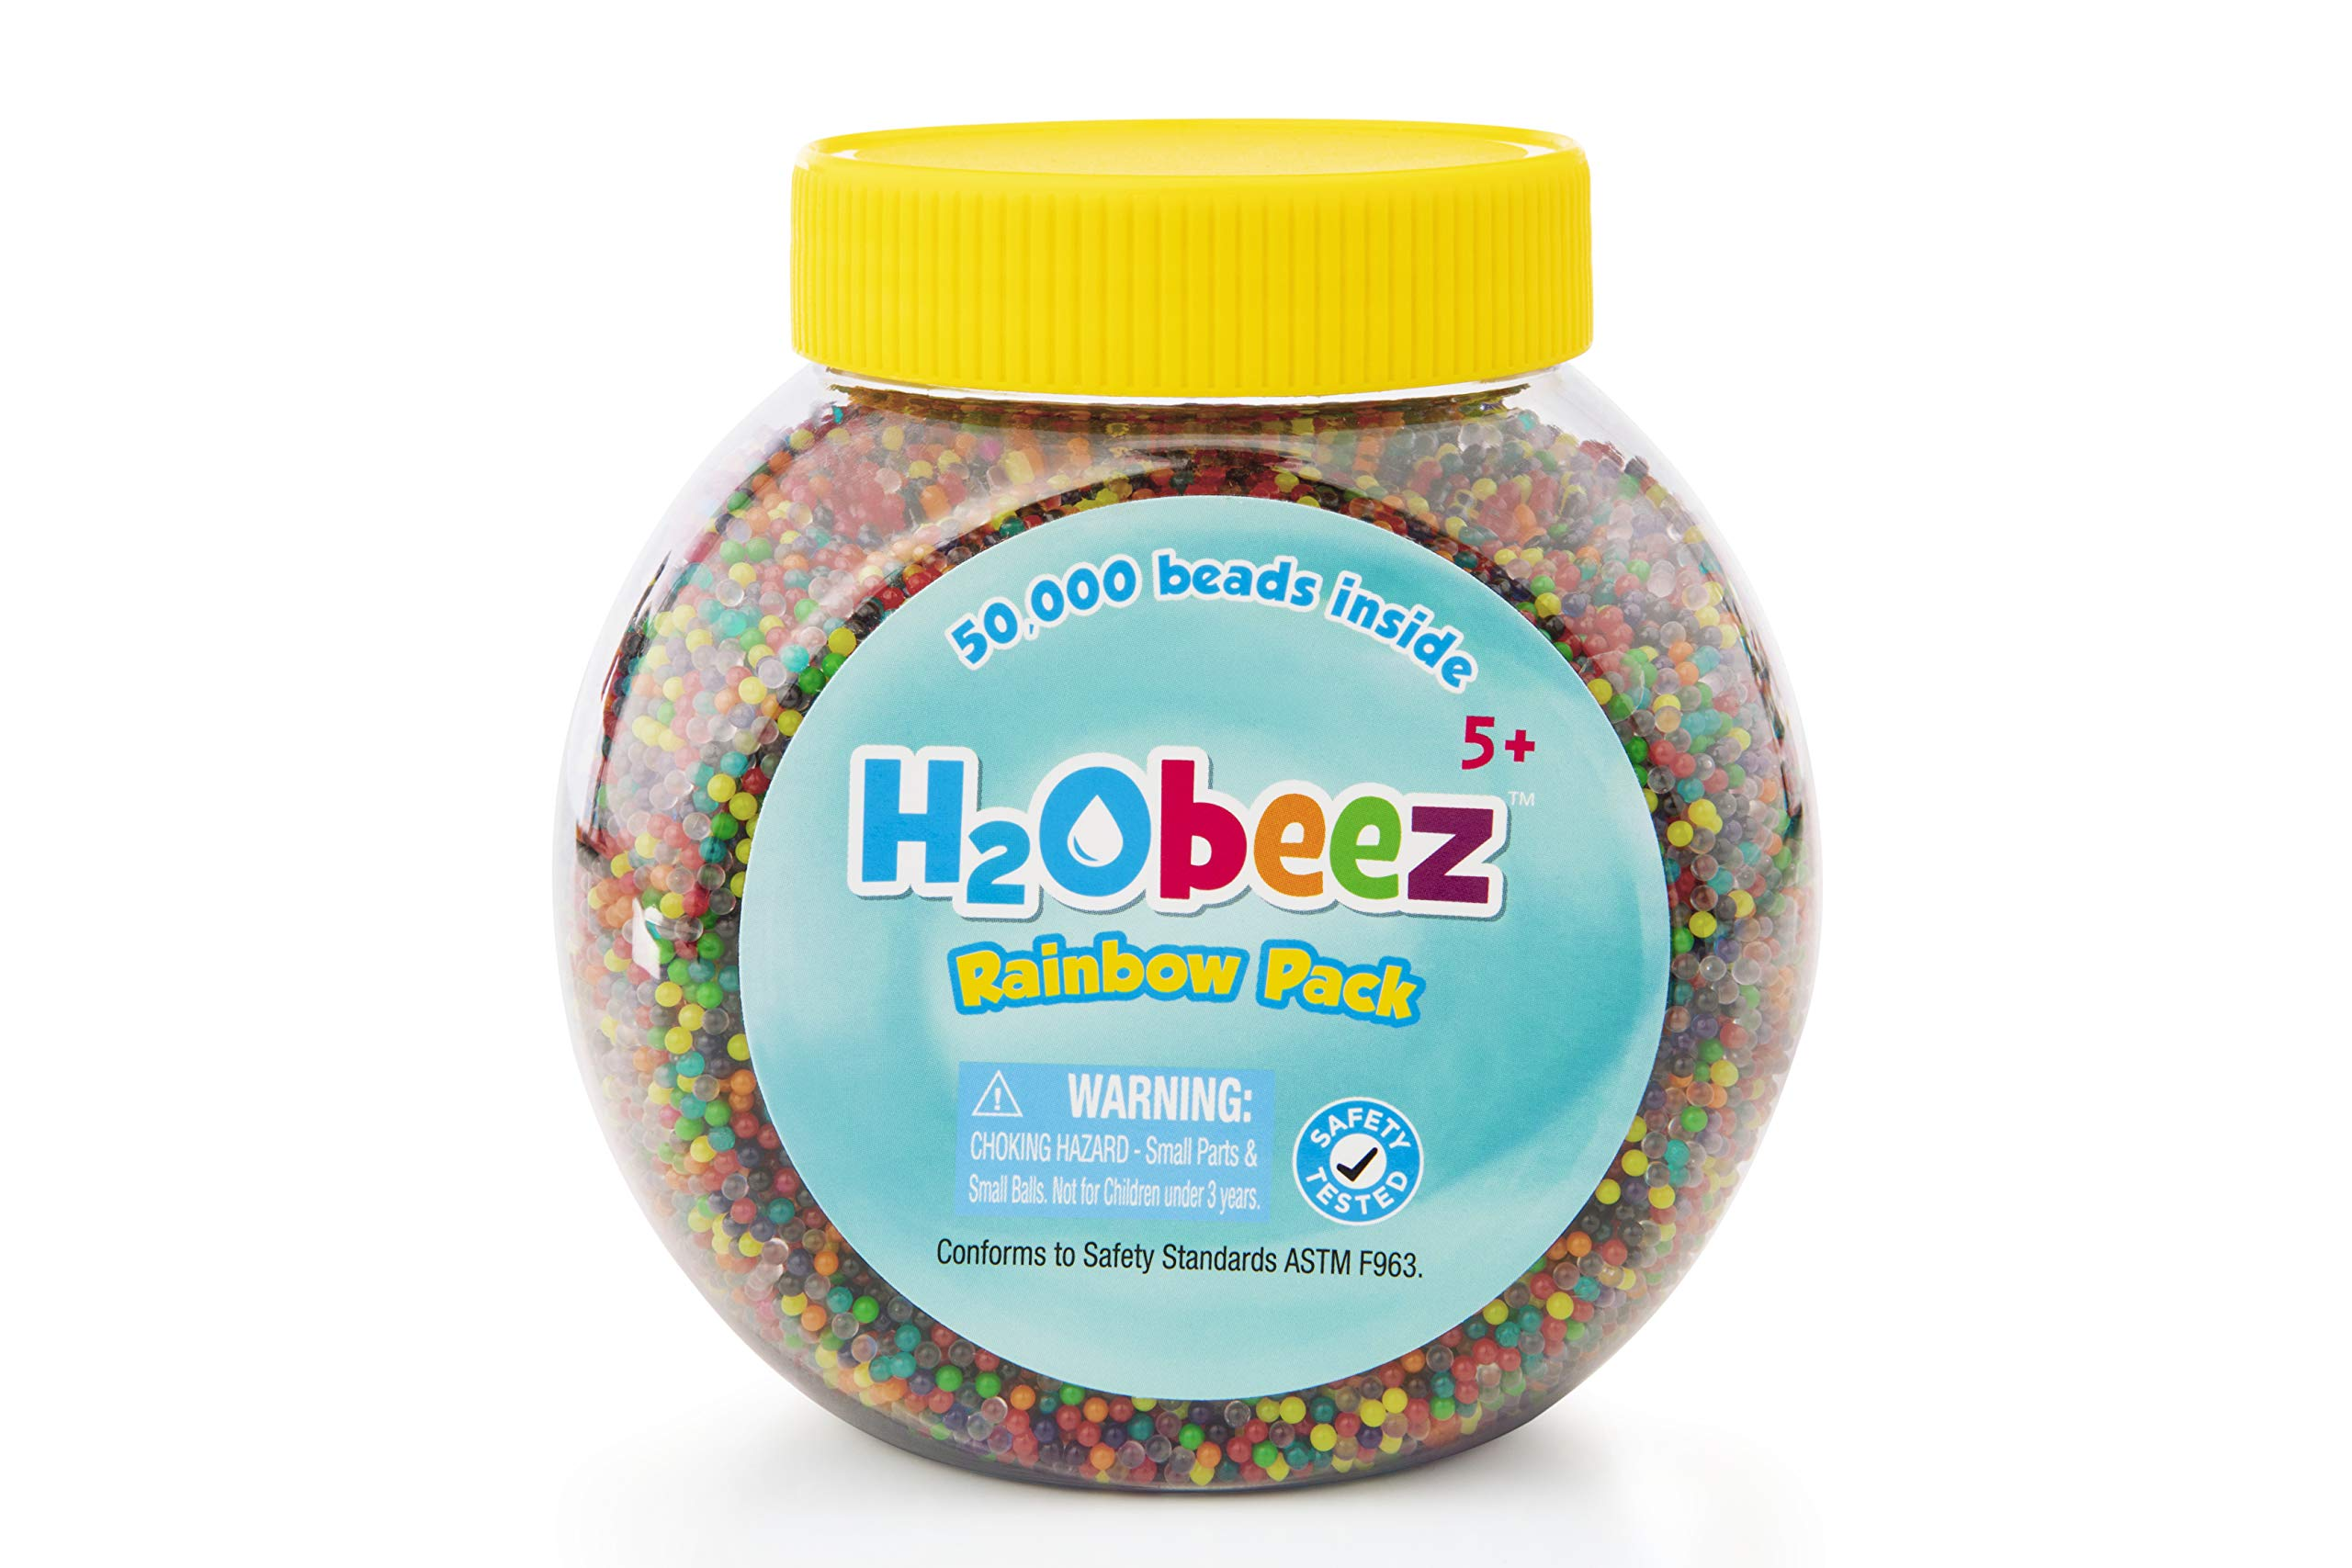 Orbeez -H2Obeez Rainbow Pack–50,000 Orbeez Water Beads, Non-Toxic, Safety-Tested Kids Sensory/Tactile Toy. Refill for all Orbeez SPA items. Filler for Vases & Plant. Great for Wedding & Home Décor.